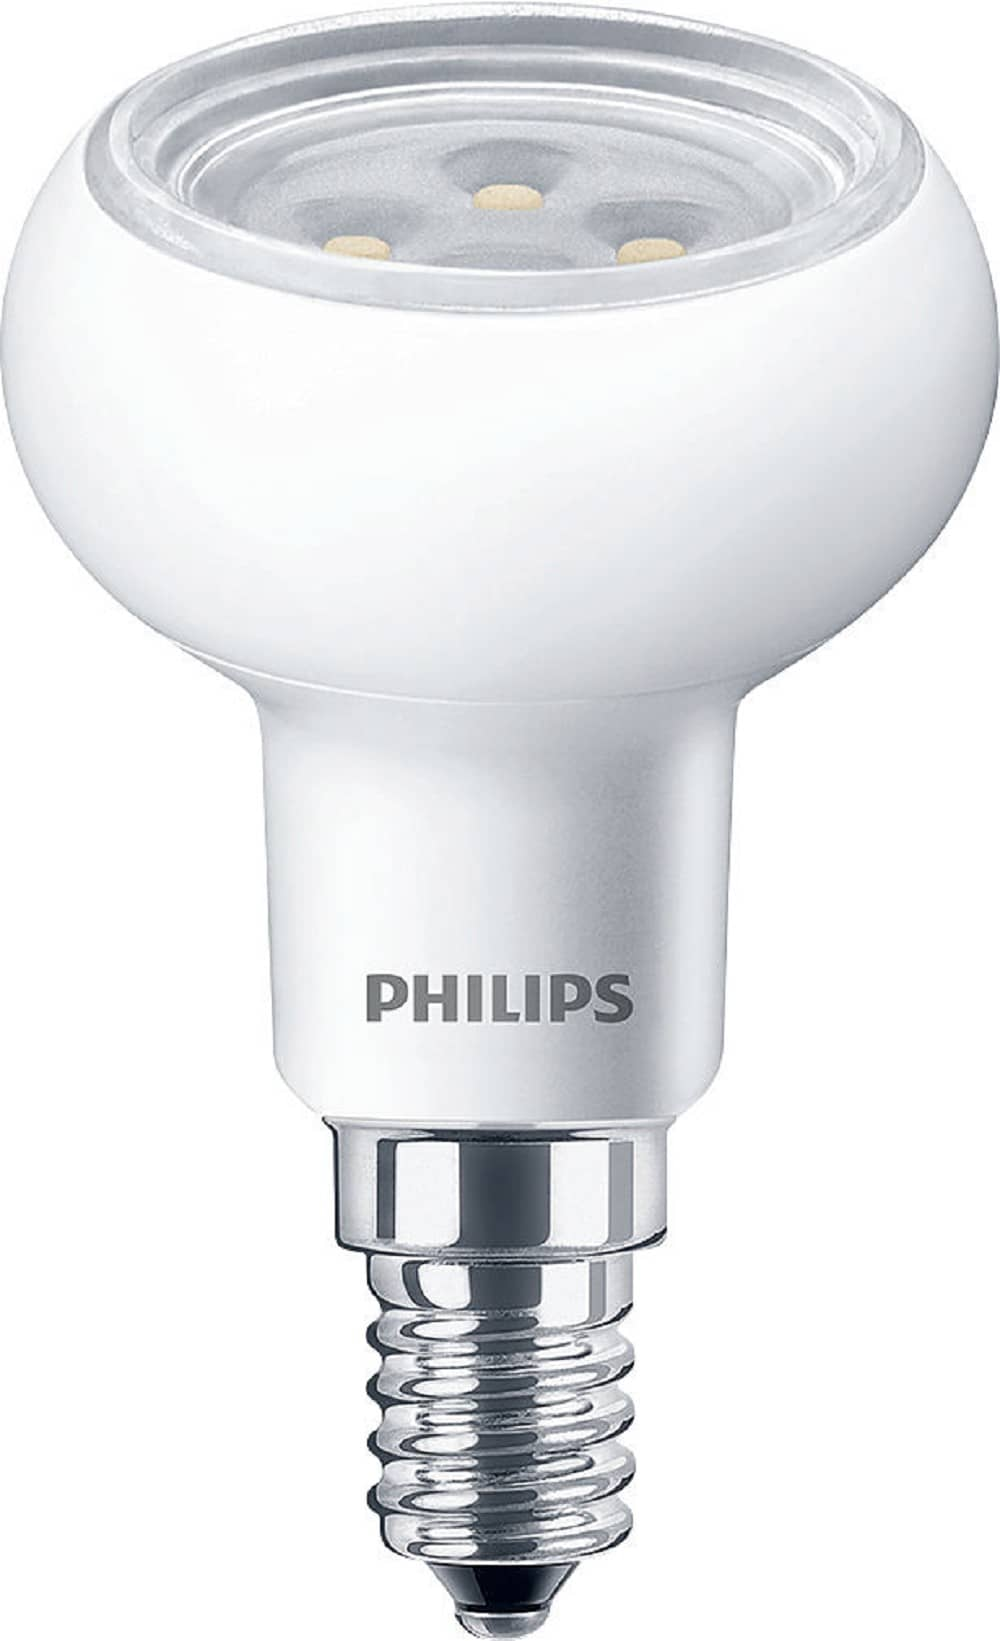 philips e14 led spot core pro 4 5w 270lm dimmbar warmweiss. Black Bedroom Furniture Sets. Home Design Ideas